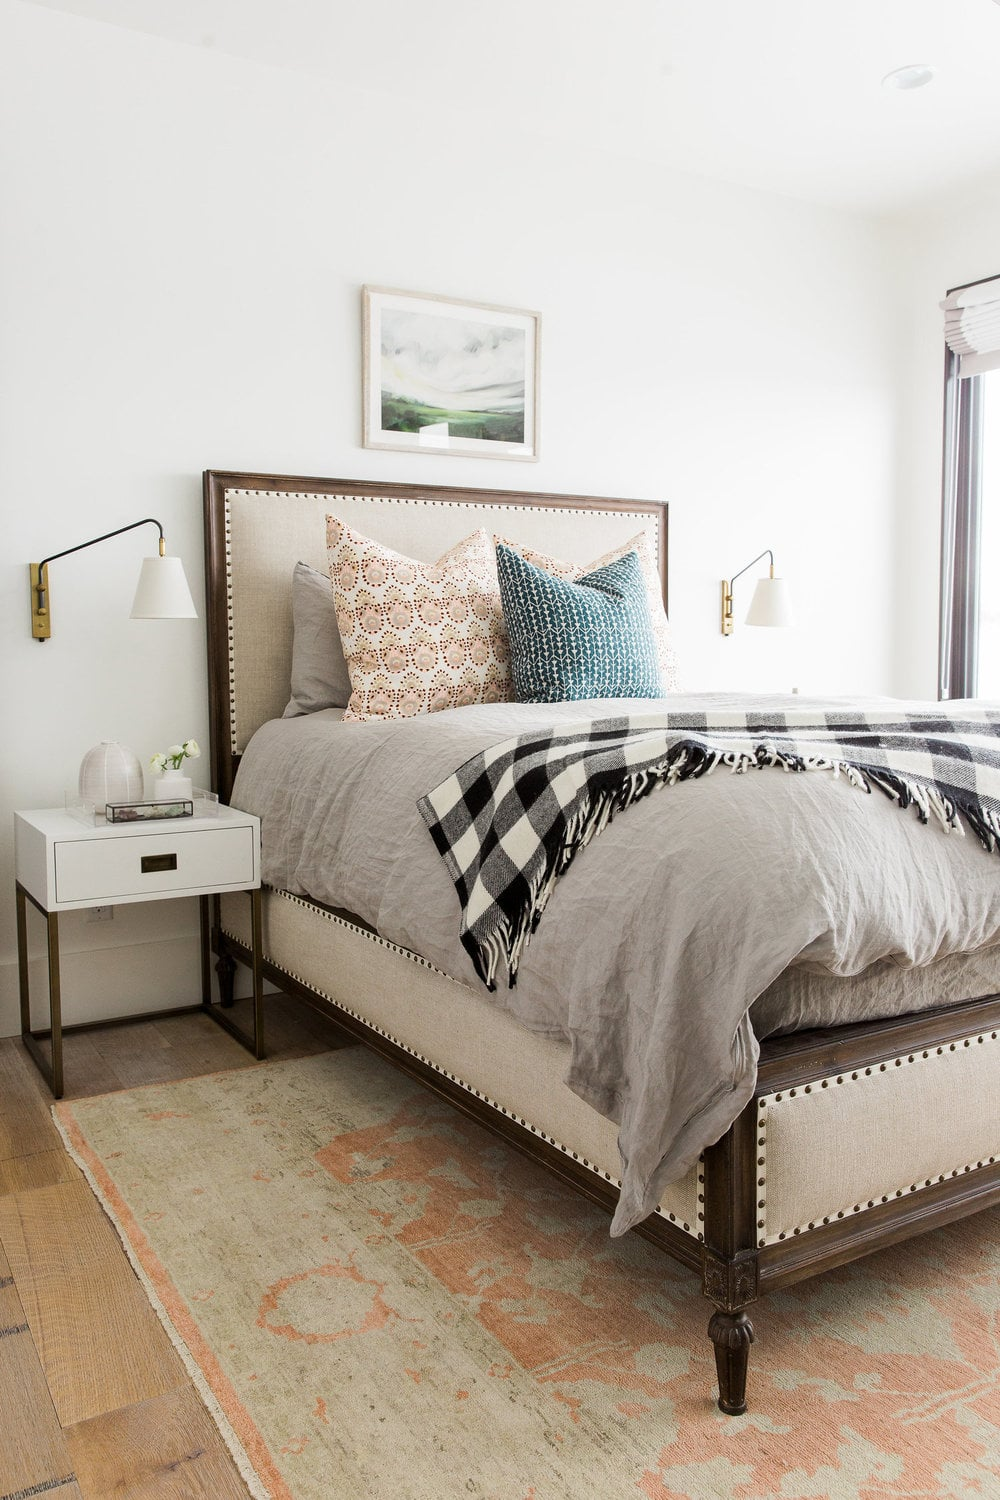 How To Decorate A Bedroom From Scratch Popsugar Home